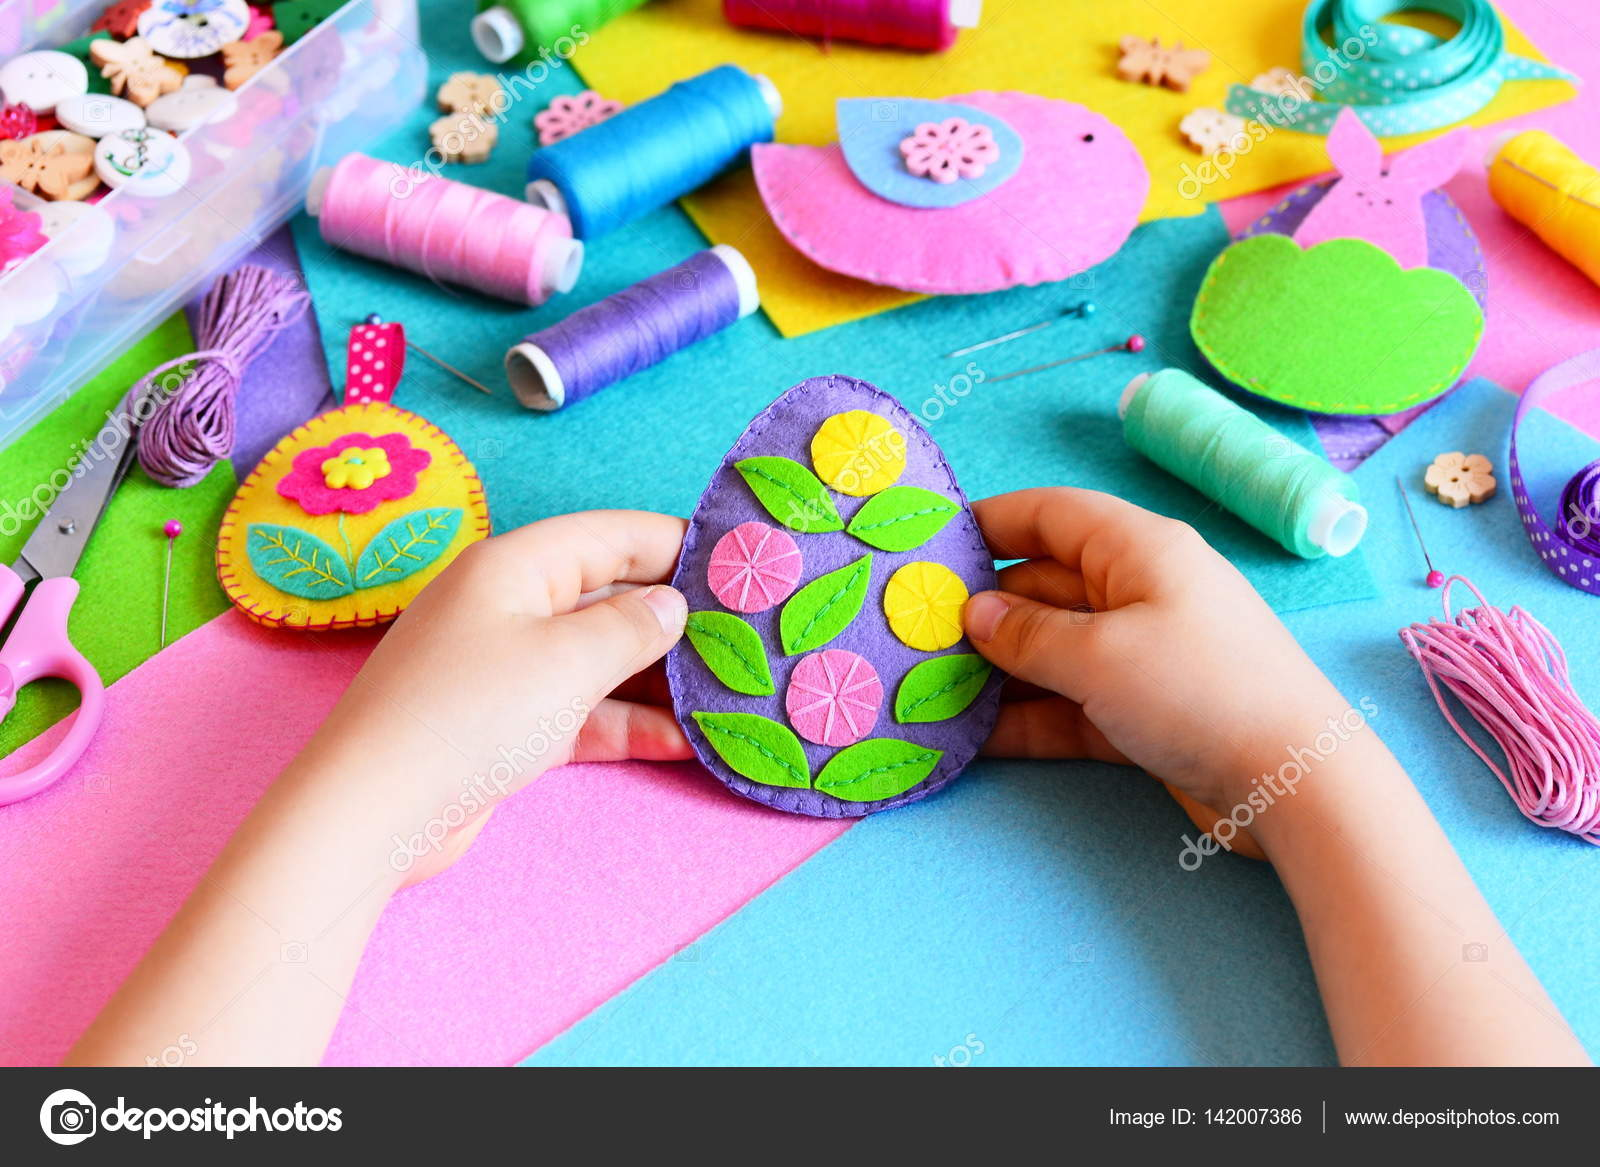 Kid Holds Easter Egg Decor In His Hands Small Kid Shows His Easter